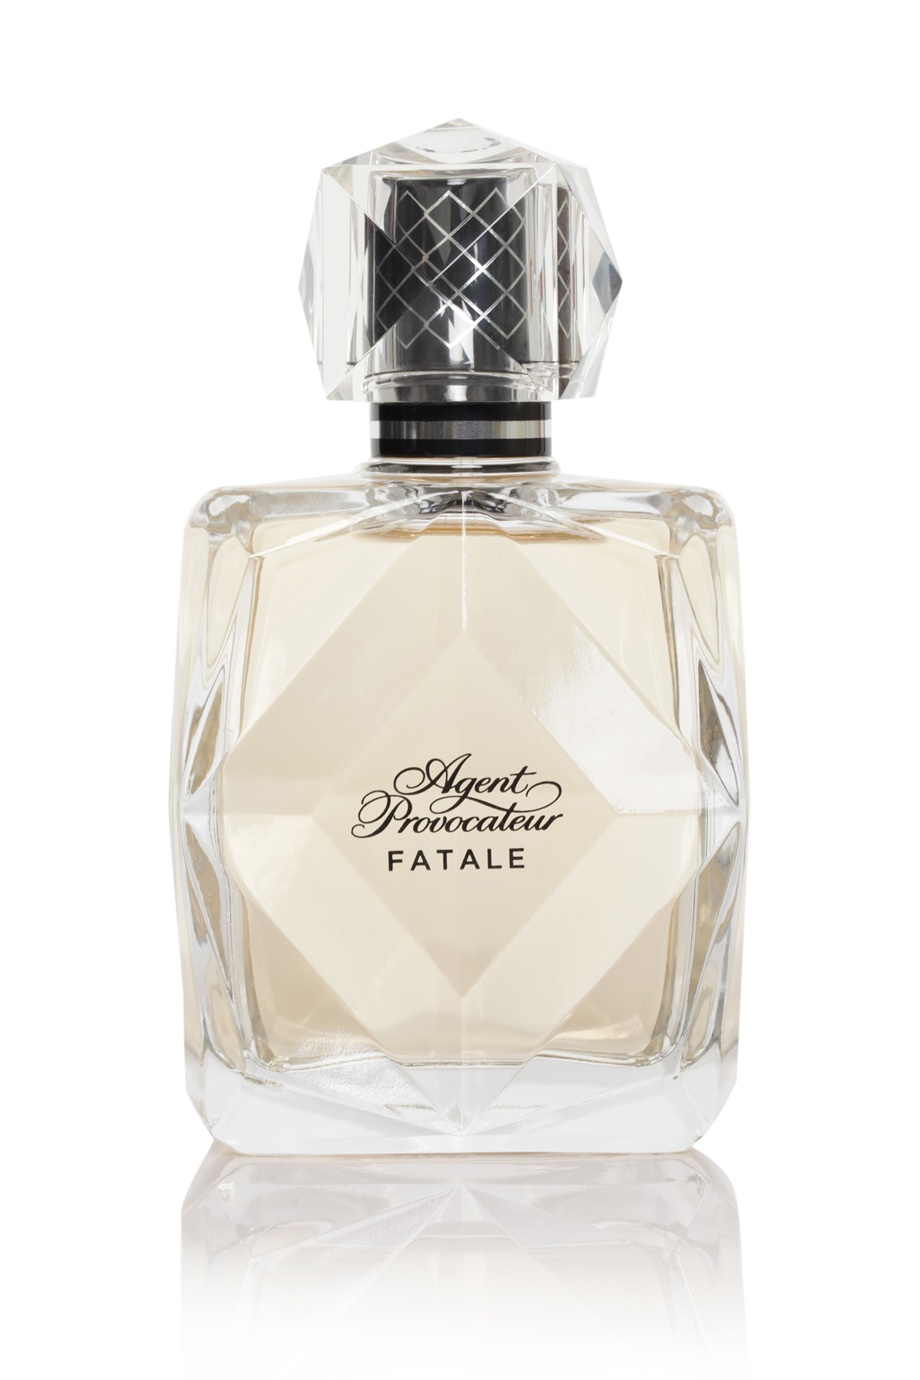 Парфюмерная вода Fatale 50ml Agent Provocateur (фото)